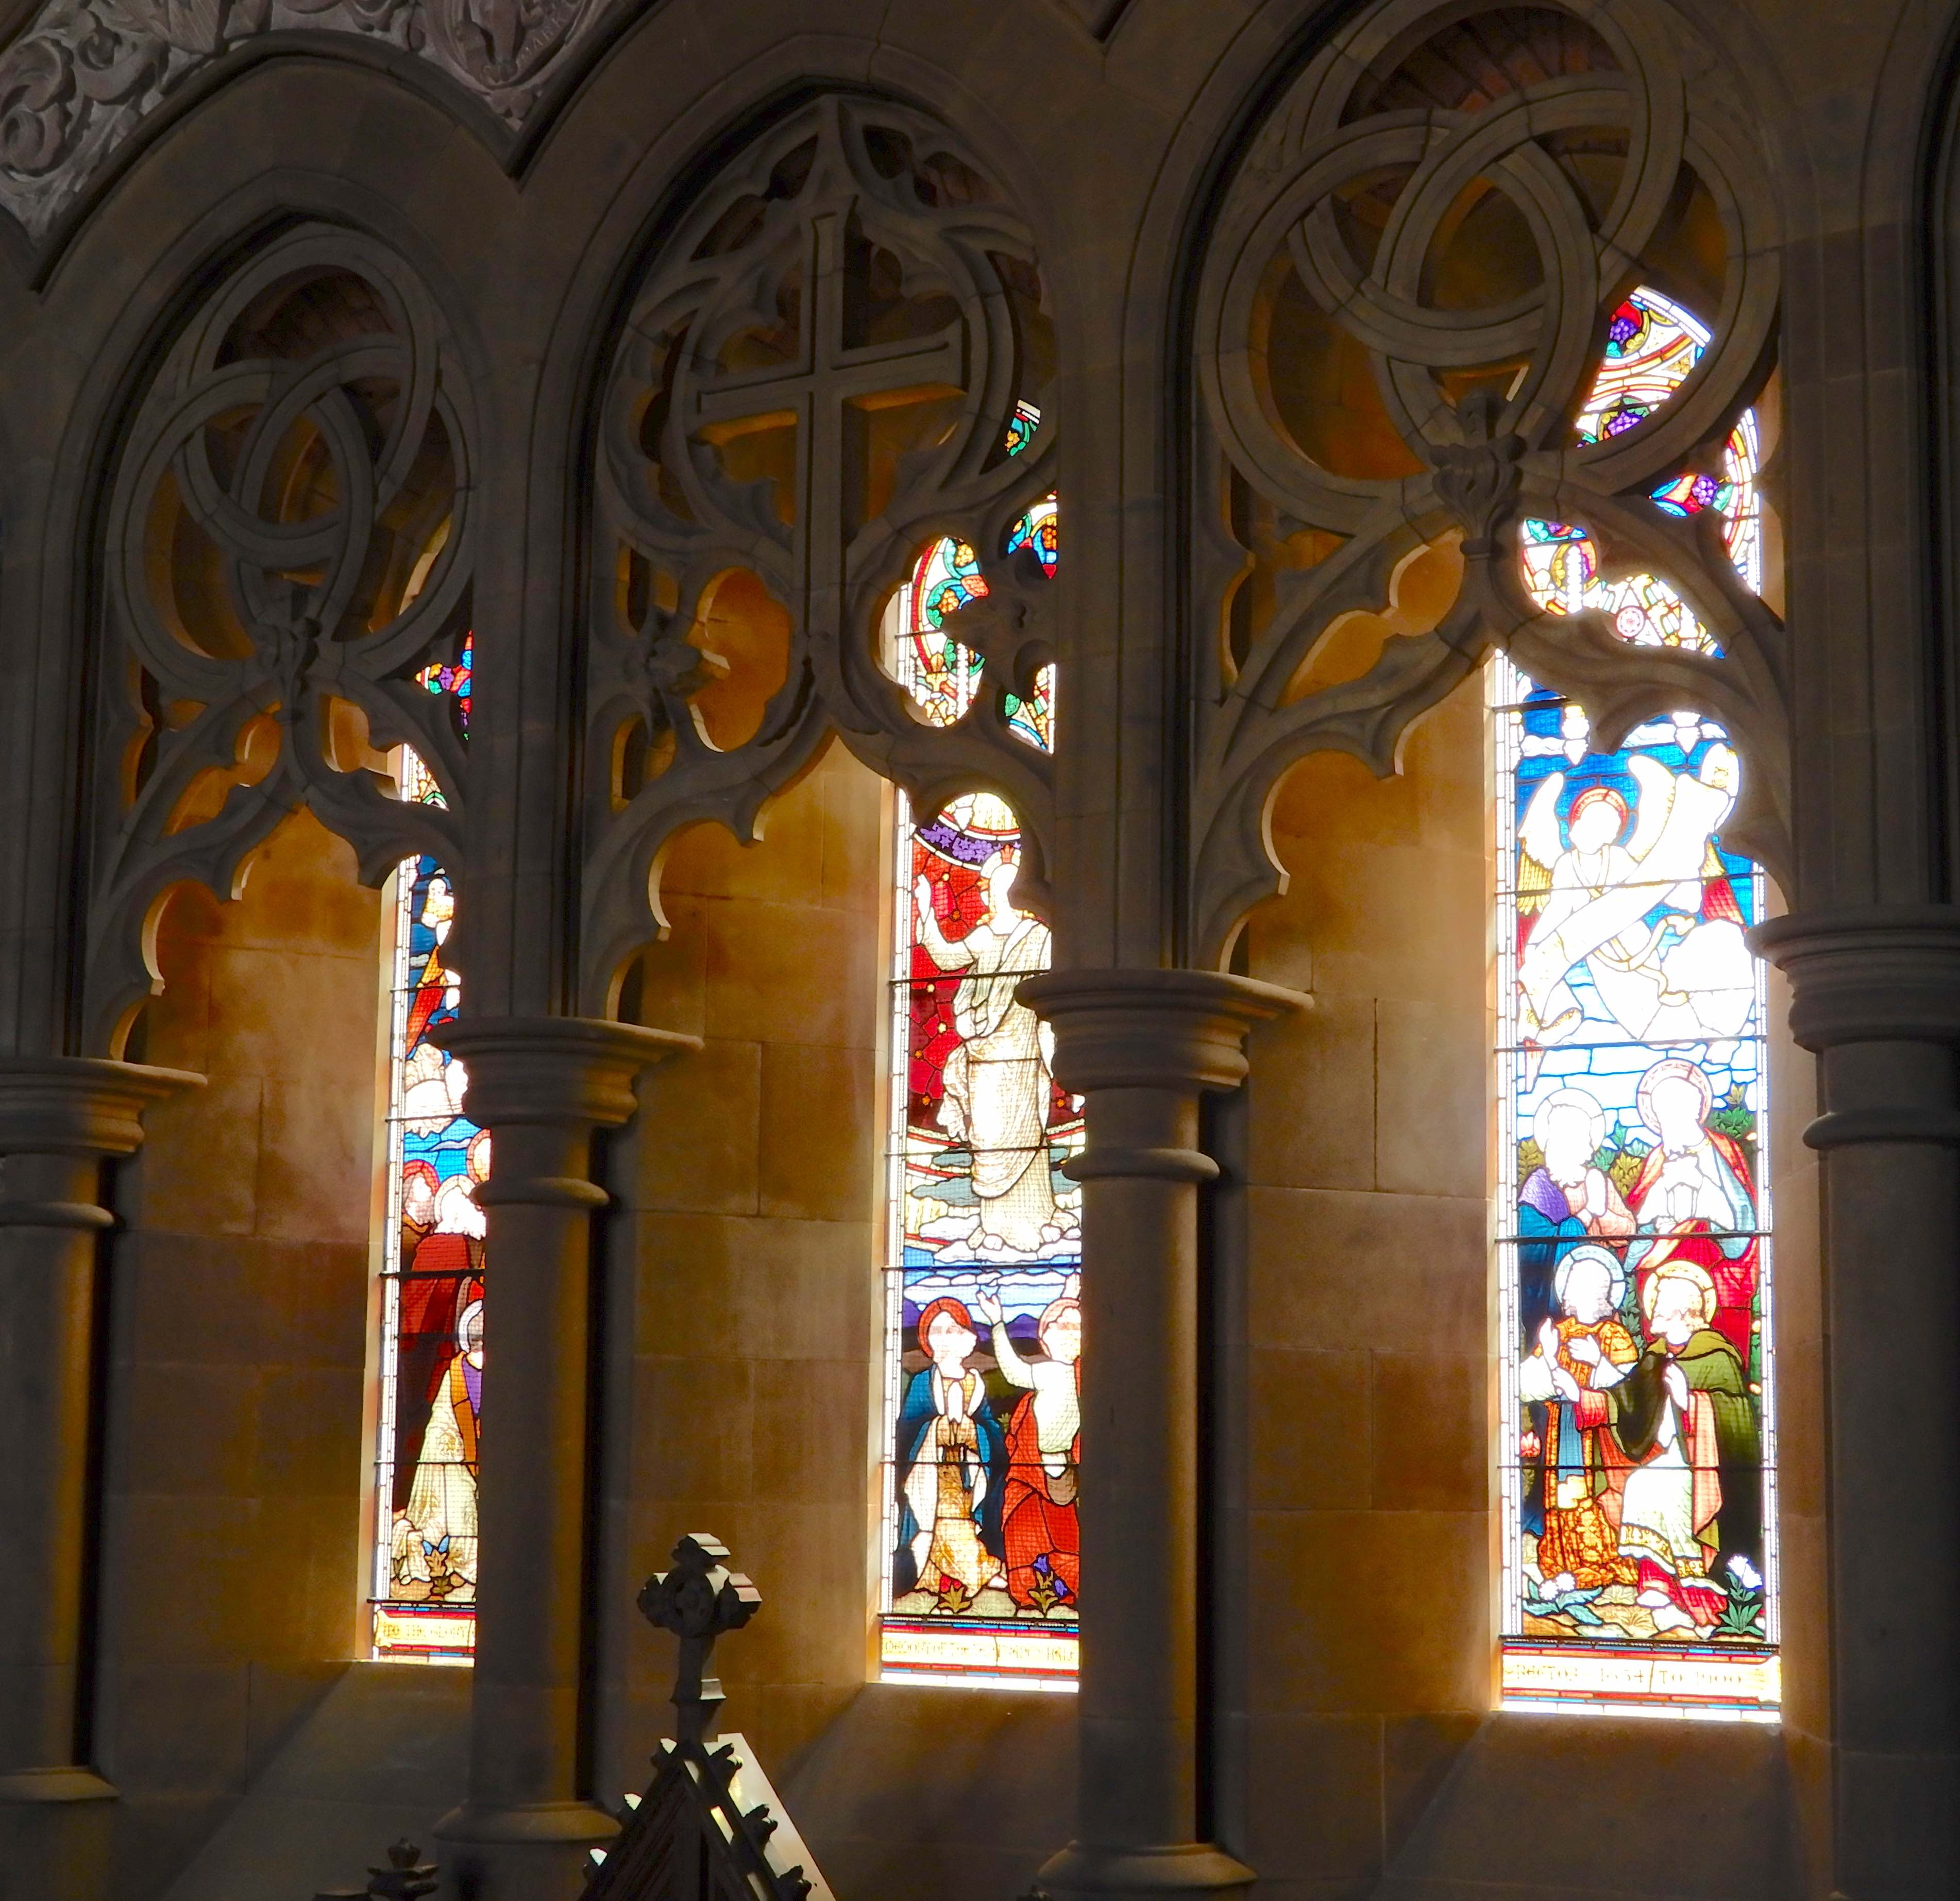 28.stained glass window from organ loft